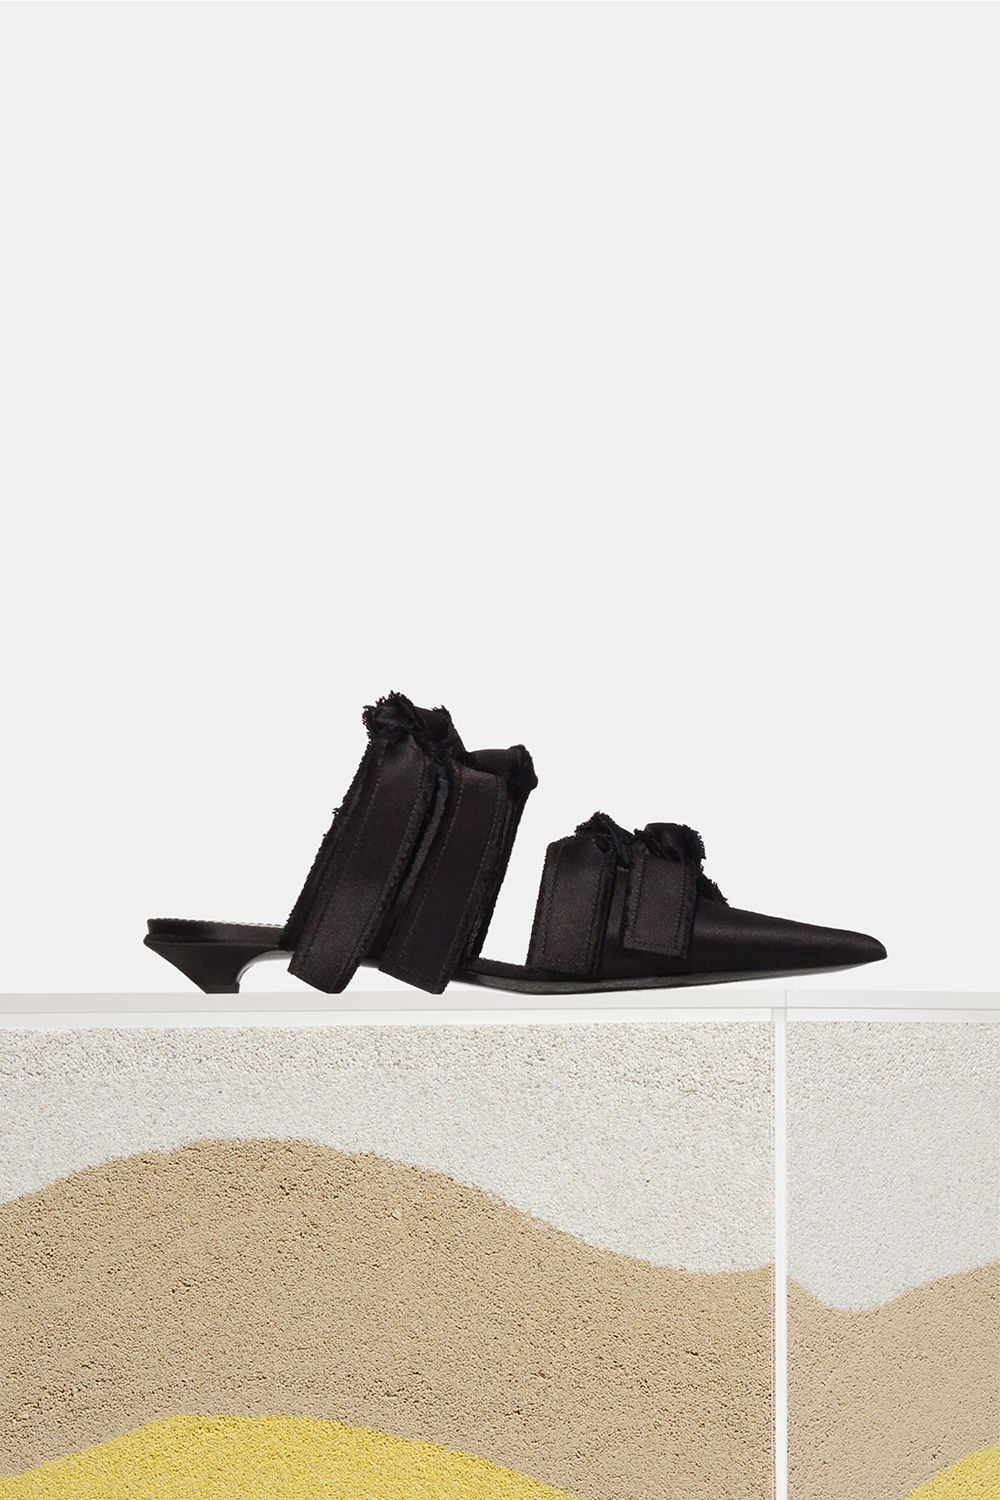 proenza schouler spring 2018 black satin knotted low heel slide